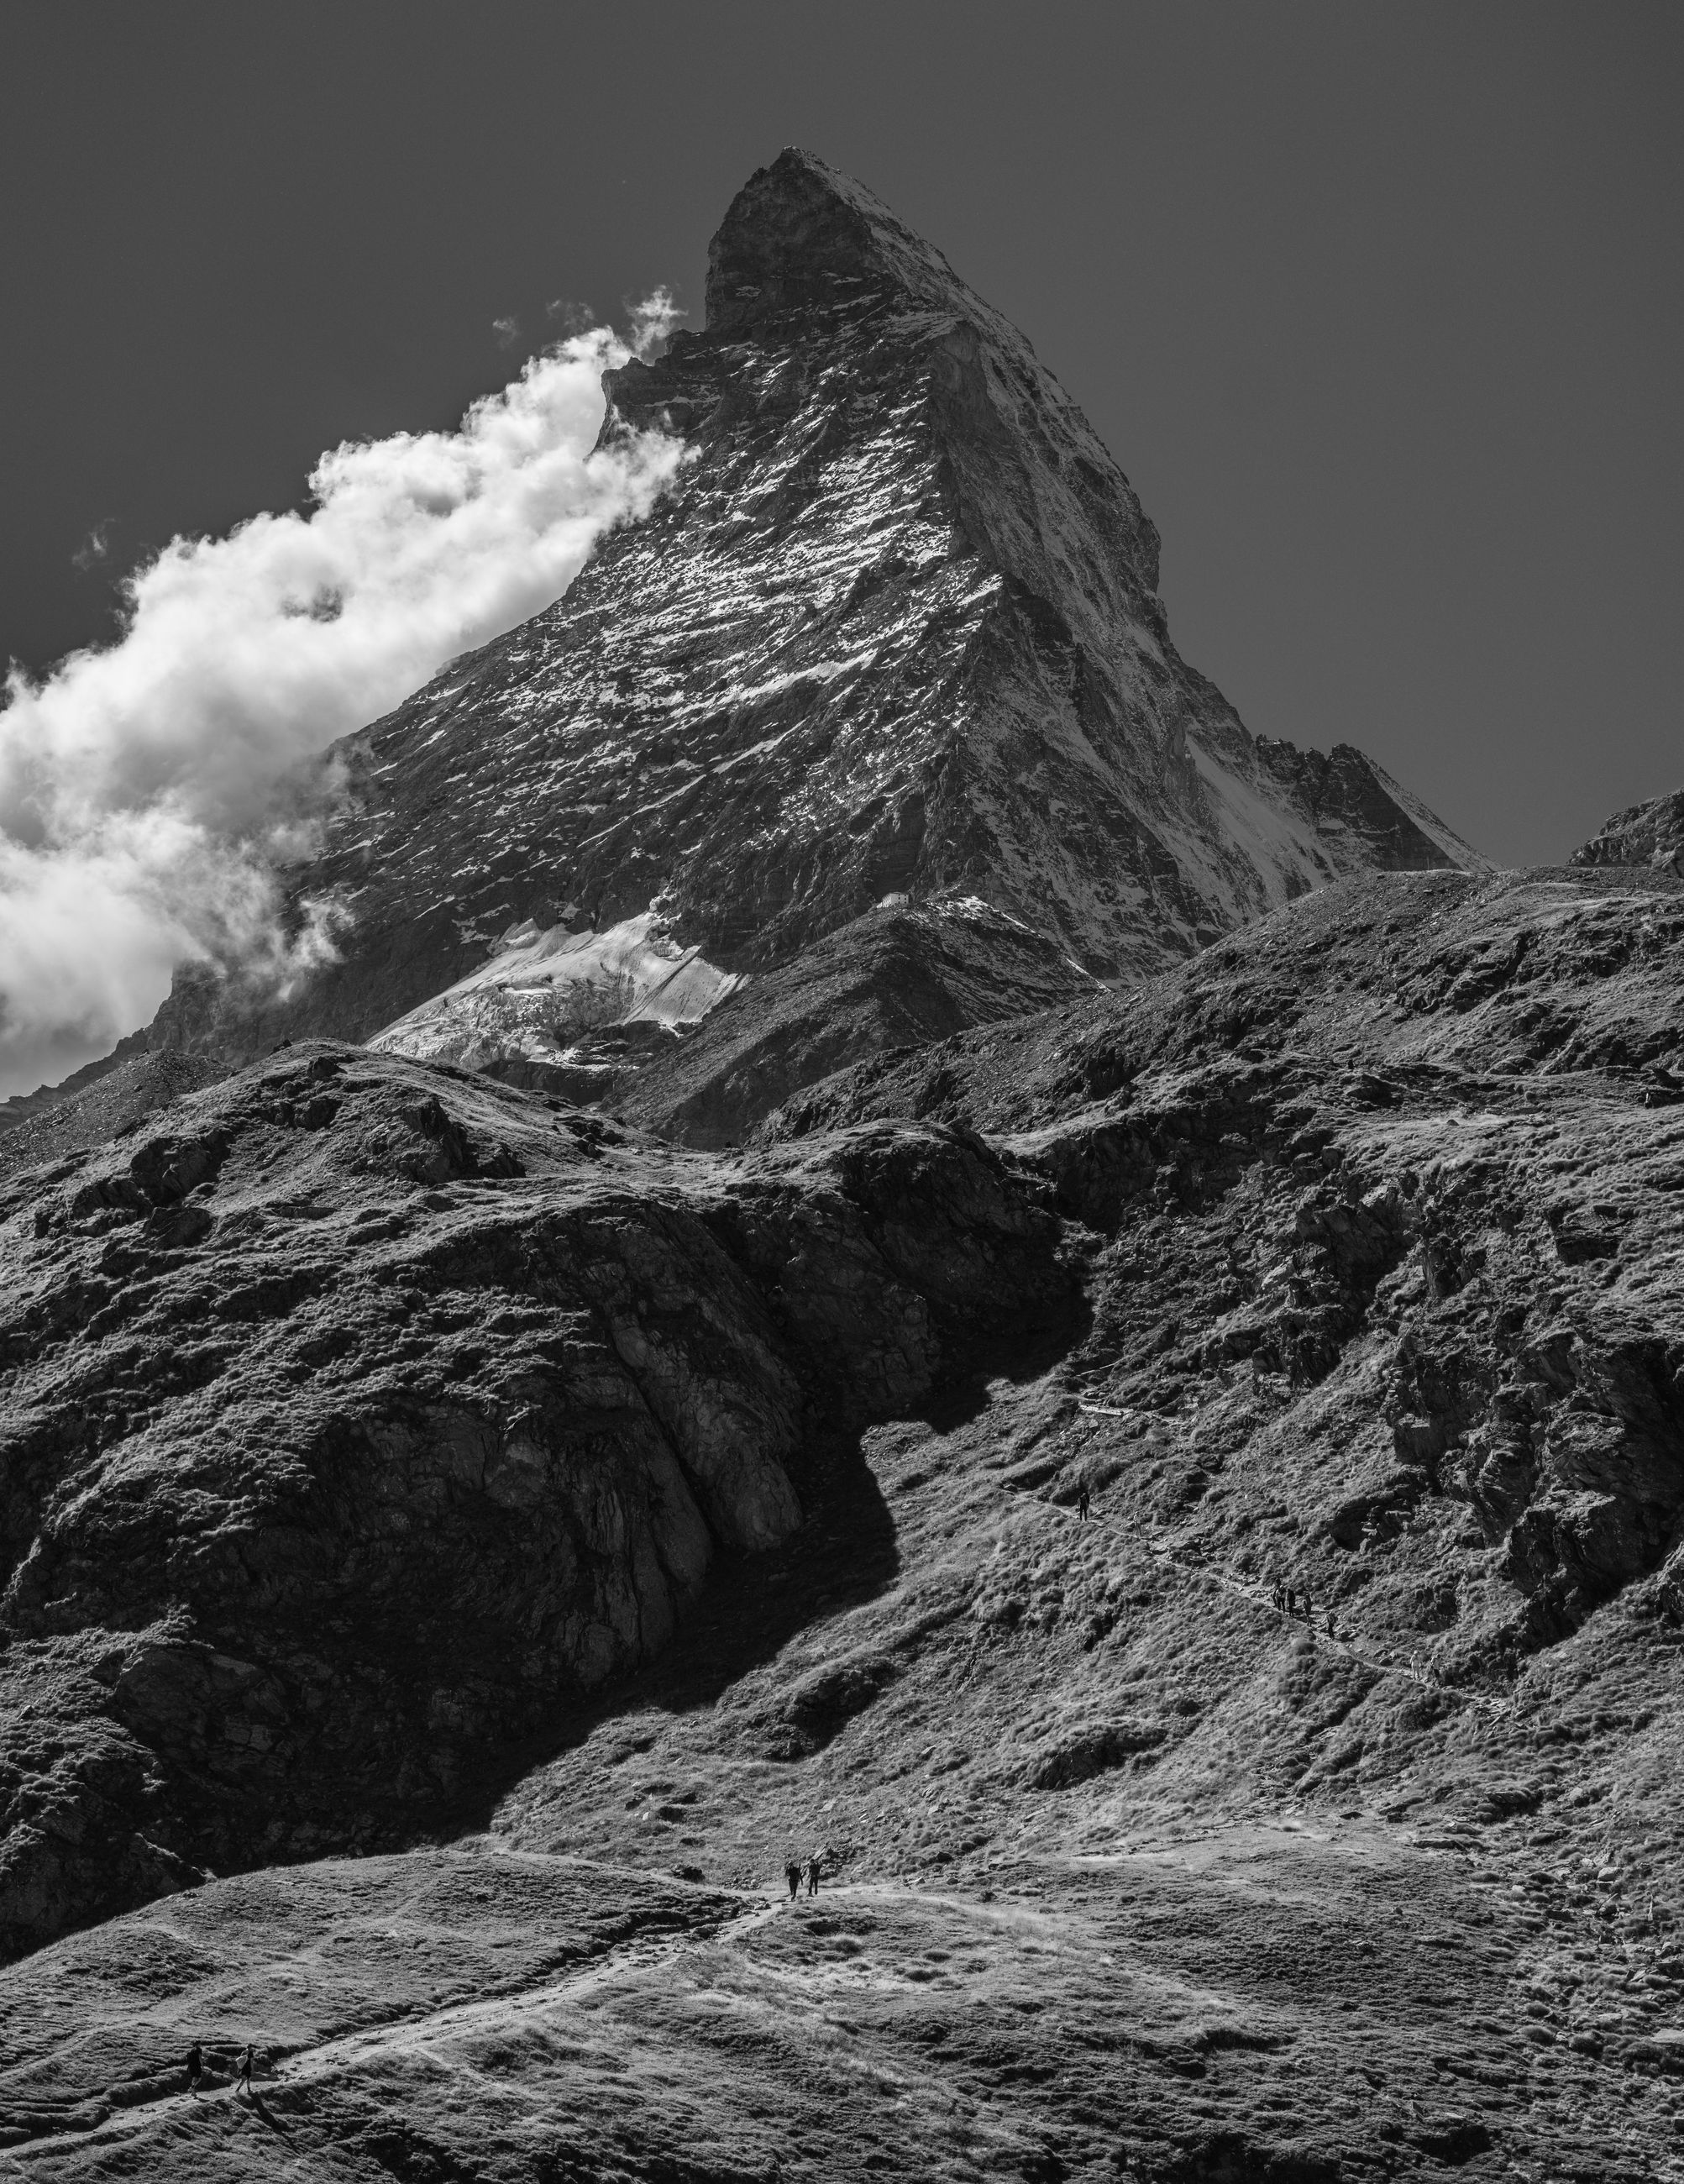 mountain, black and white, environment, beauty in nature, scenics - nature, sky, monochrome, landscape, monochrome photography, snow, nature, mountain range, cloud, no people, rock, geology, land, non-urban scene, mountain peak, cold temperature, travel destinations, travel, outdoors, day, physical geography, volcano, ridge, snowcapped mountain, tranquility, winter, tranquil scene